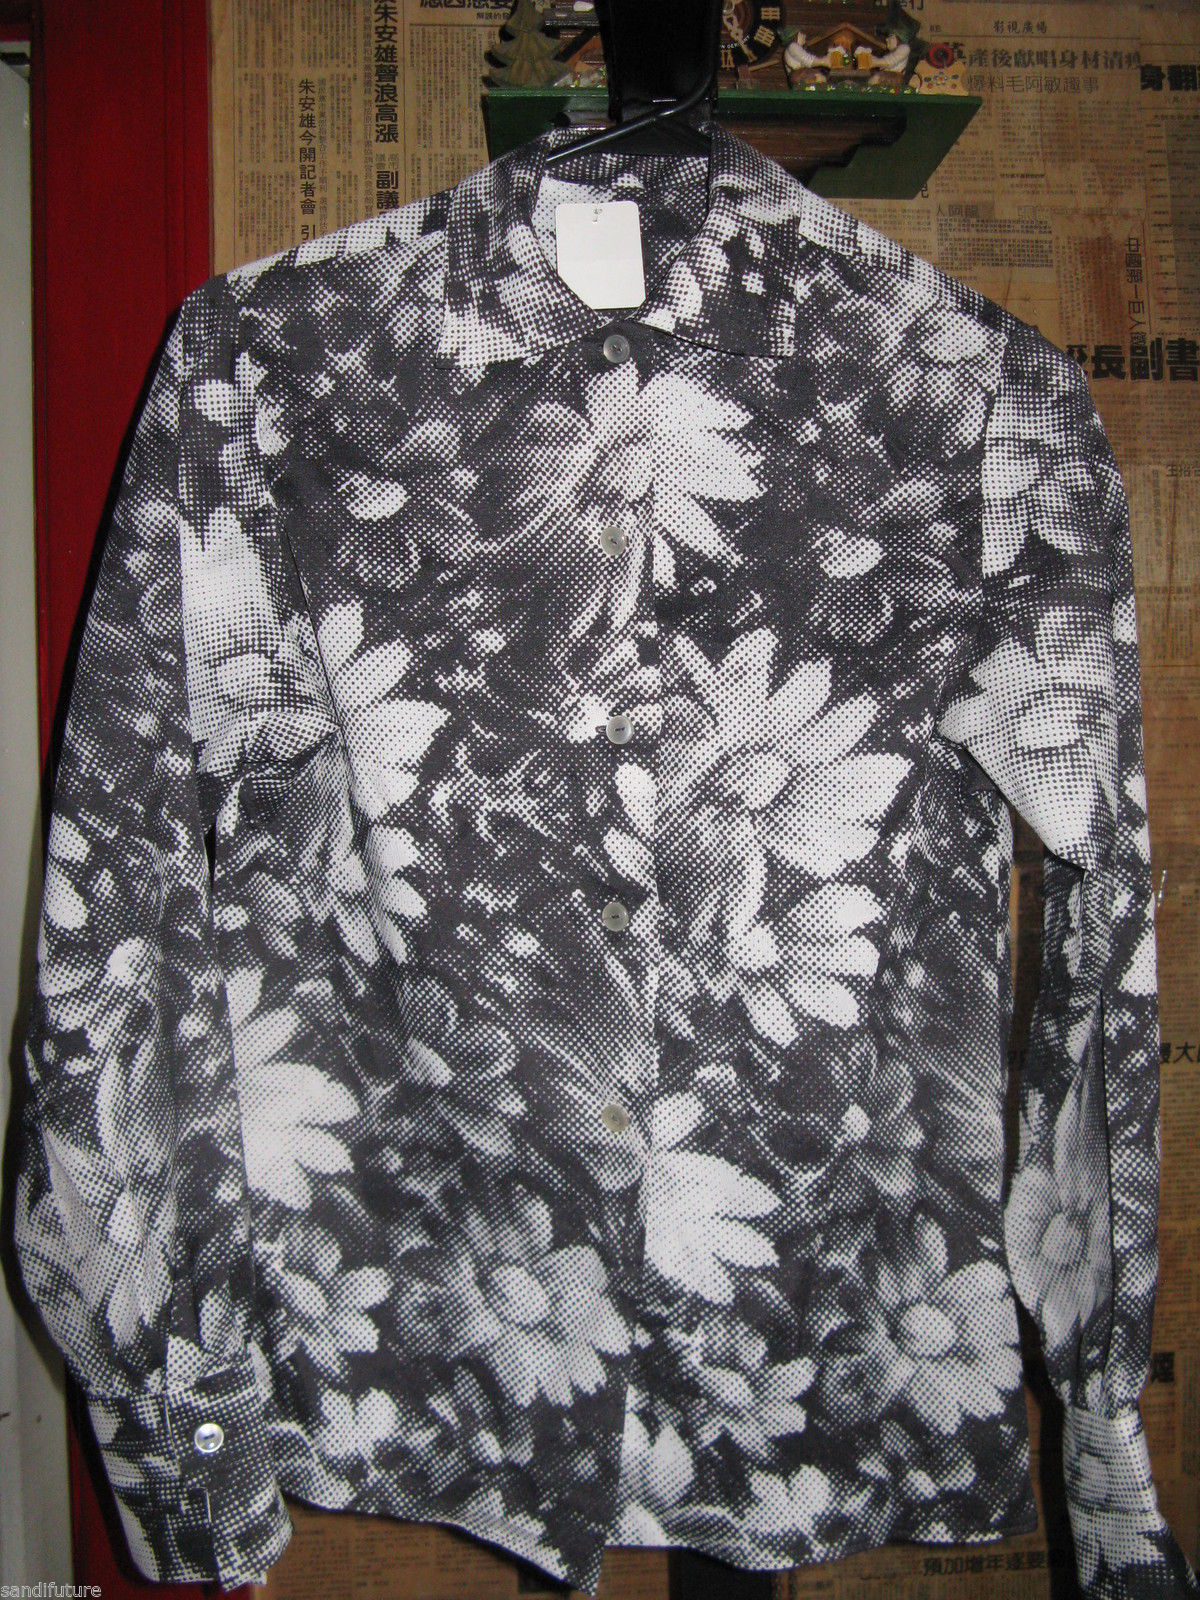 70s 60s Op Art Pop optic daisy floral shirt blouse french cuffs S-M